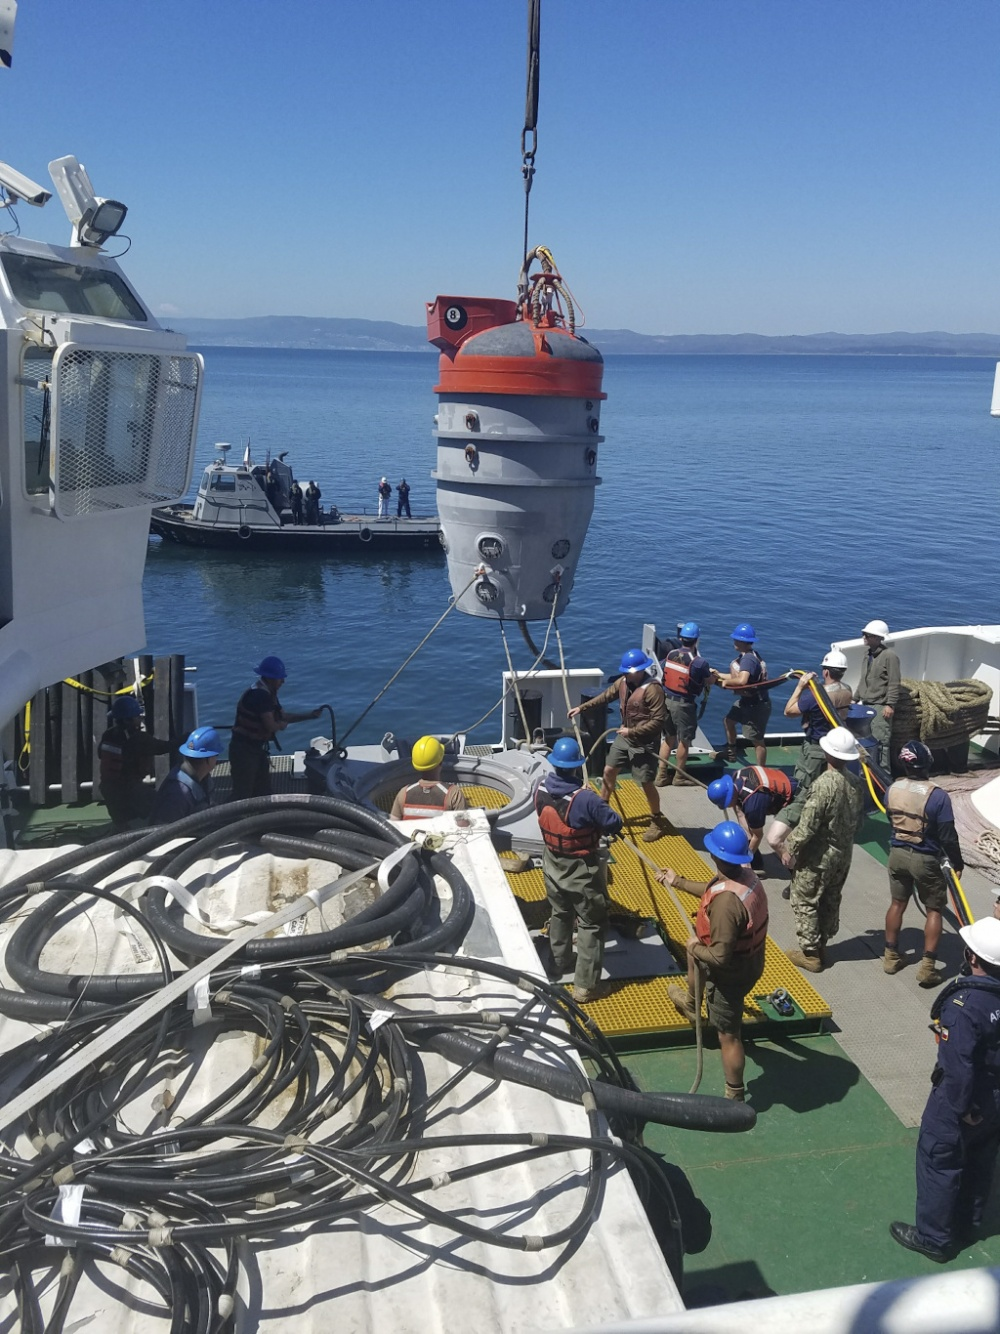 TALCAUHANO, Chile (Oct. 12, 2017) Sailors assigned to Undersea Rescue Command practice deploying the submarine rescue chamber during CHILEMAR VII. CHILEMAR is a bilateral exercise designed to demonstrate interoperability between the U.S. submarine rescue system and Chilean submarines. (U.S. Navy photo)